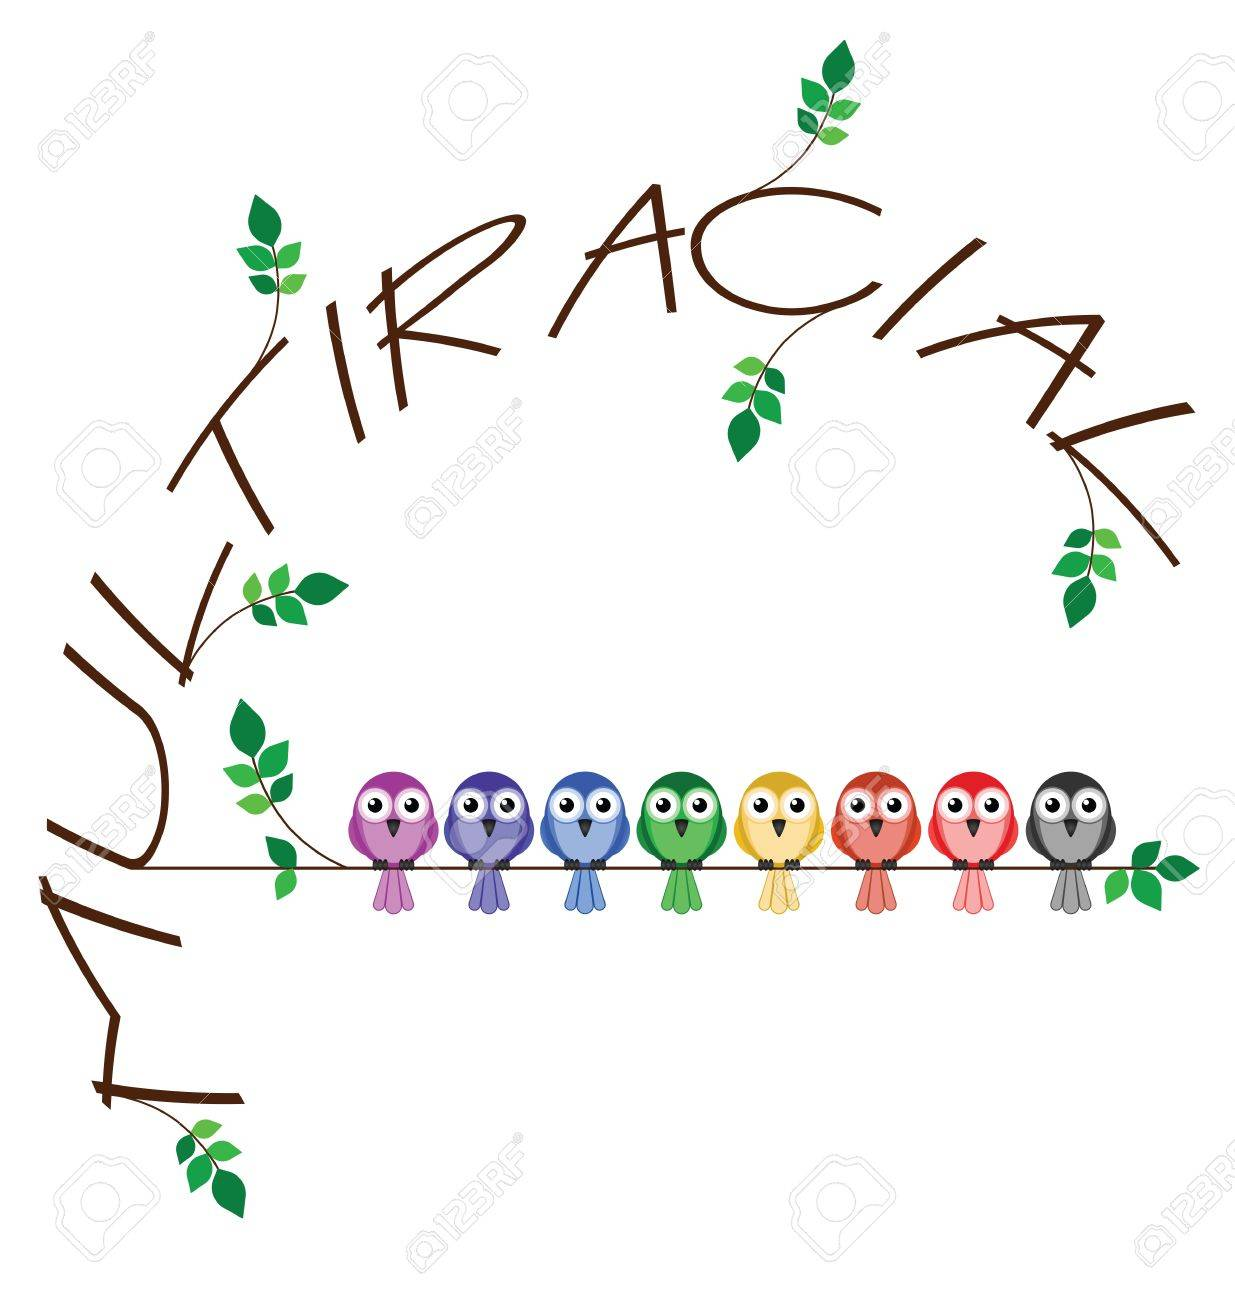 Multiracial twig text representing diversity in society Stock Vector - 14356056